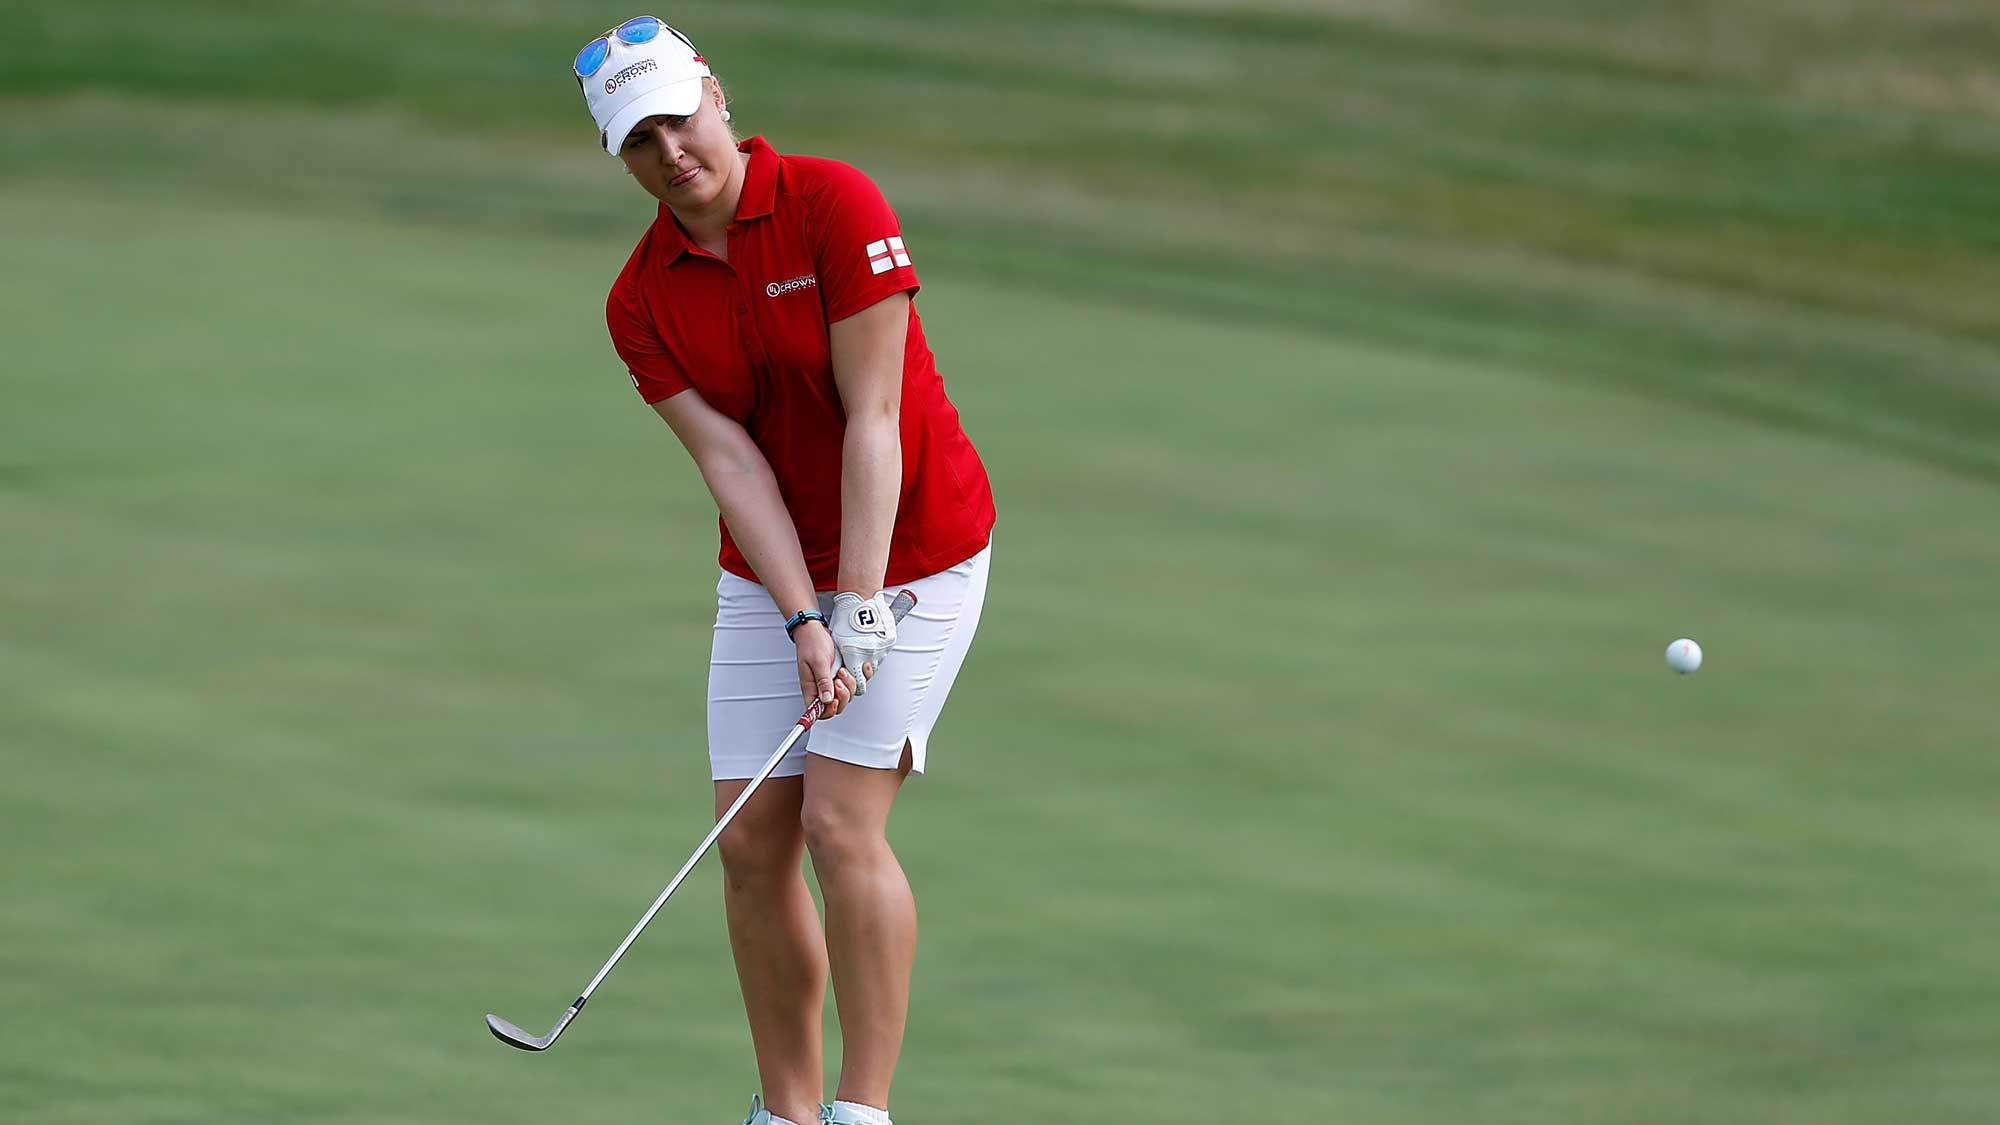 Charley Hull of England chips to the second hole during the four-ball session of the 2016 UL International Crown at the Merit Club